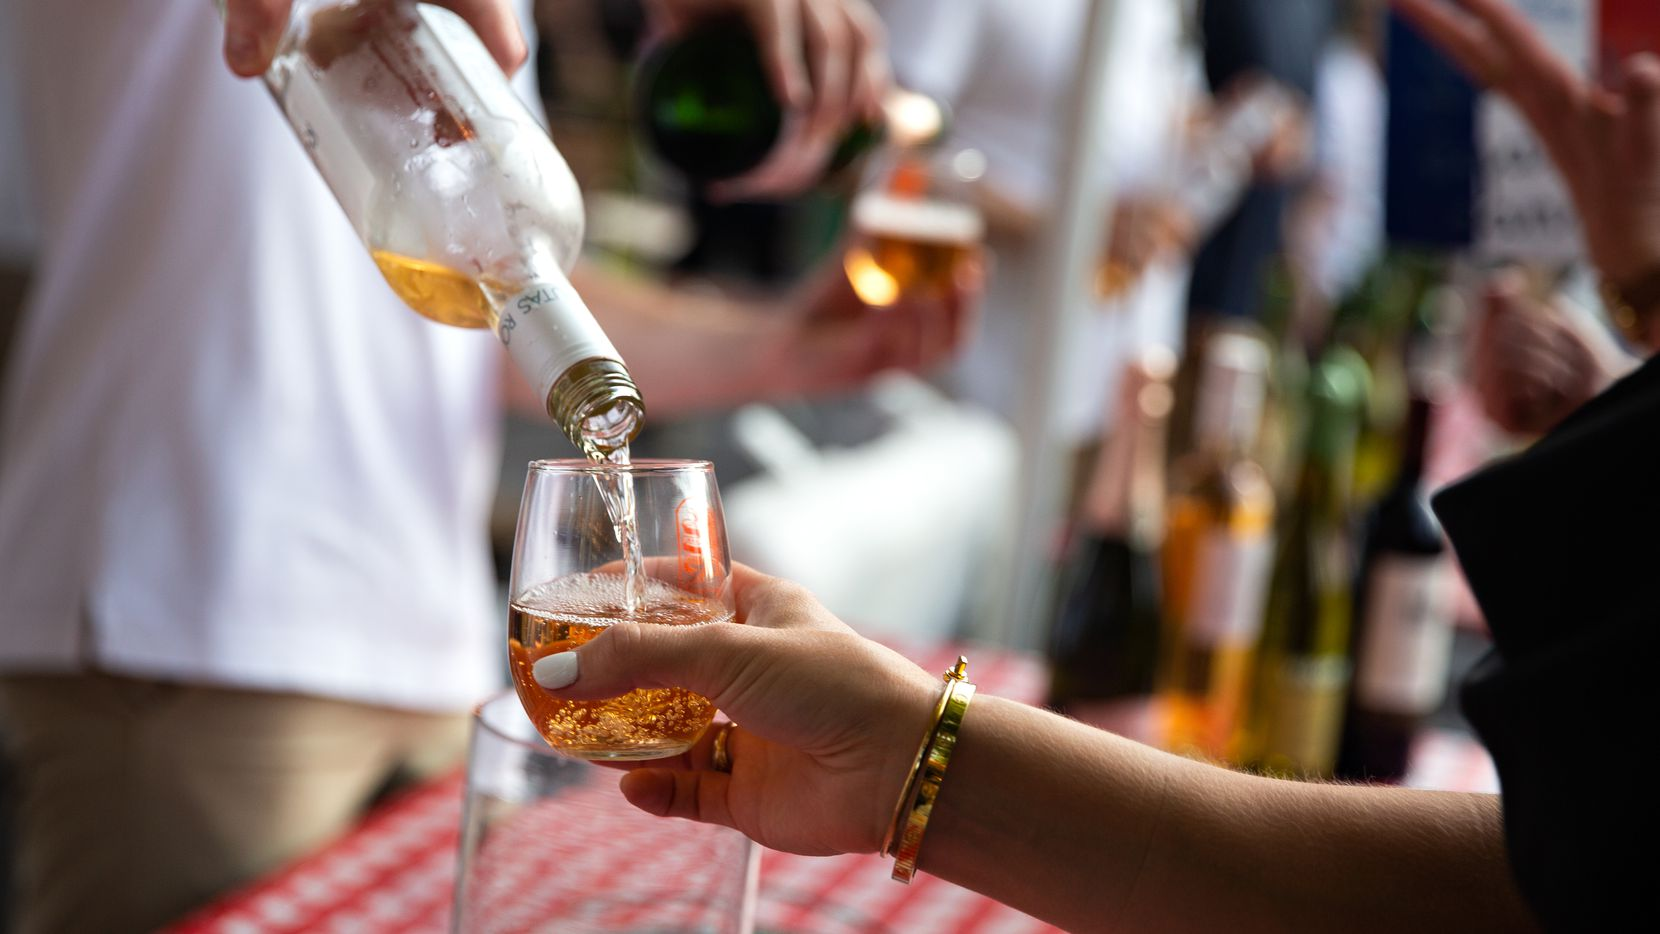 Festival goers are poured varieties of wine during an outdoor festival.